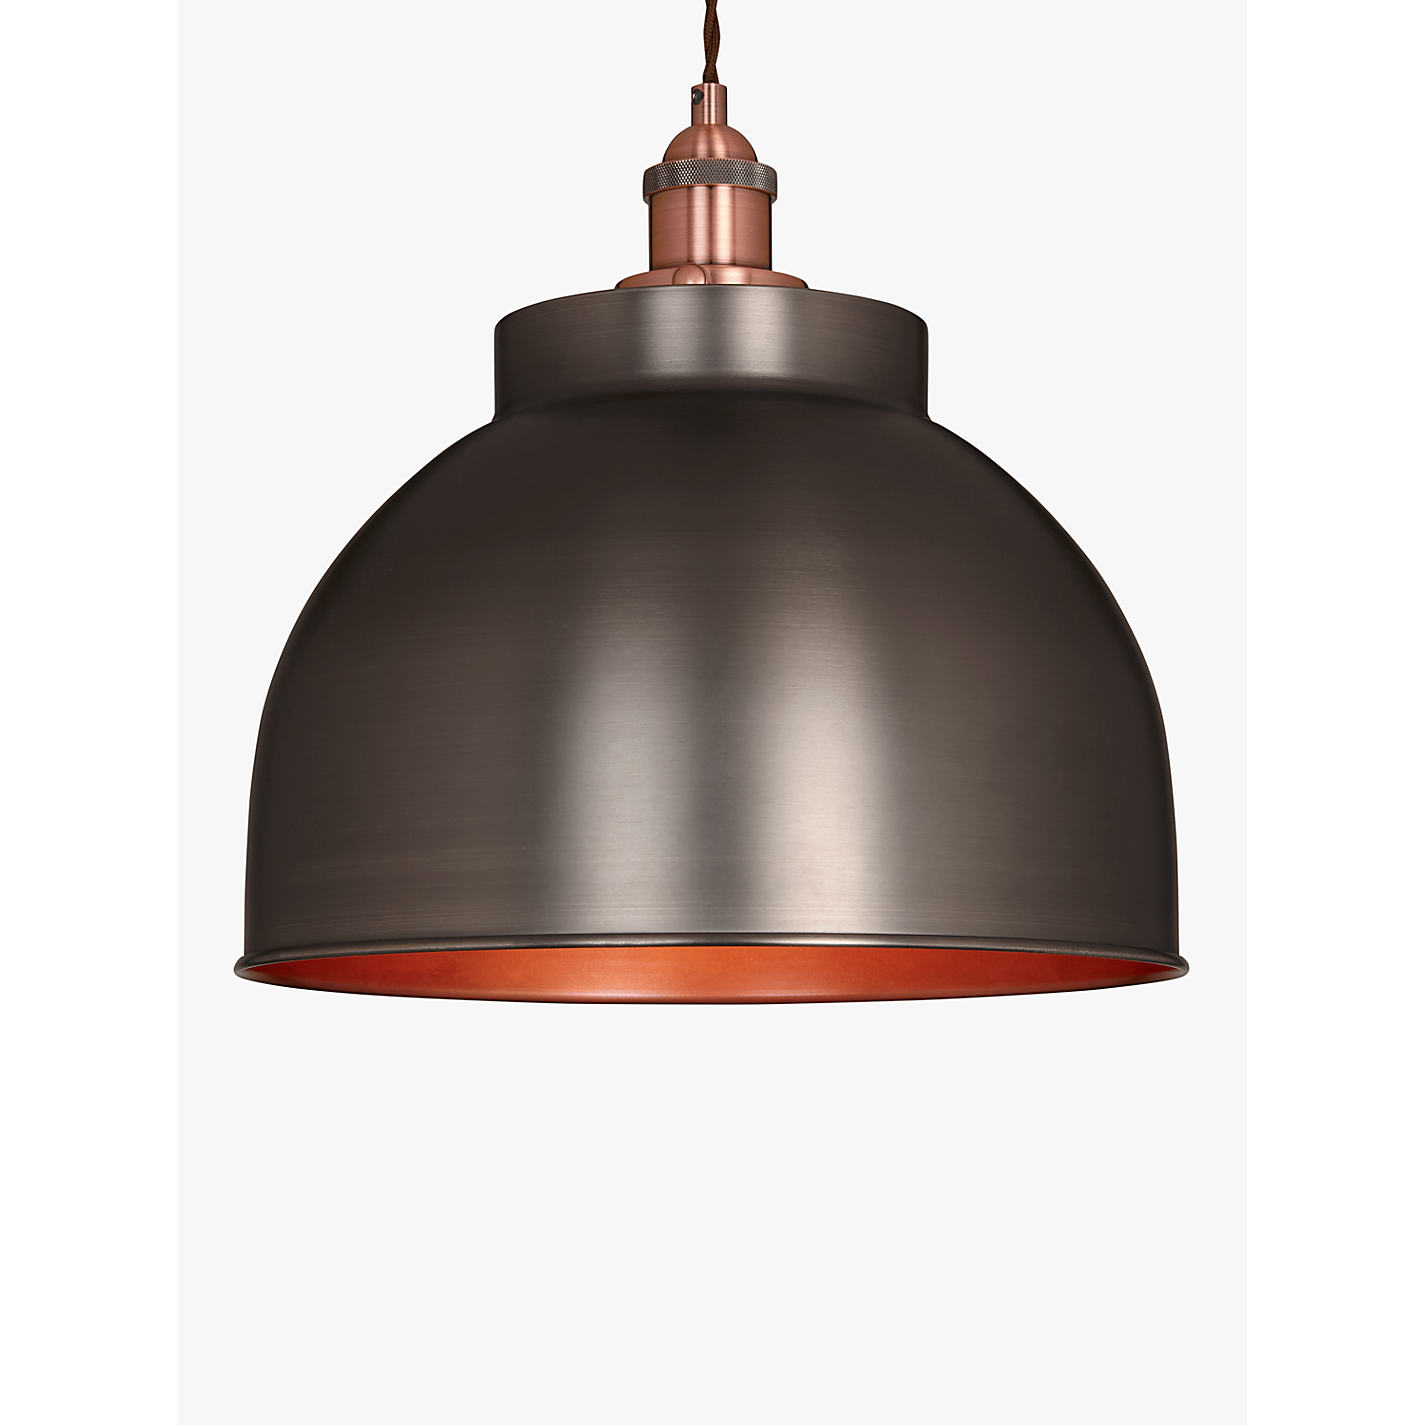 Buy john lewis baldwin large pendant ceiling light pewter john buy john lewis baldwin large pendant ceiling light pewter online at johnlewis aloadofball Gallery